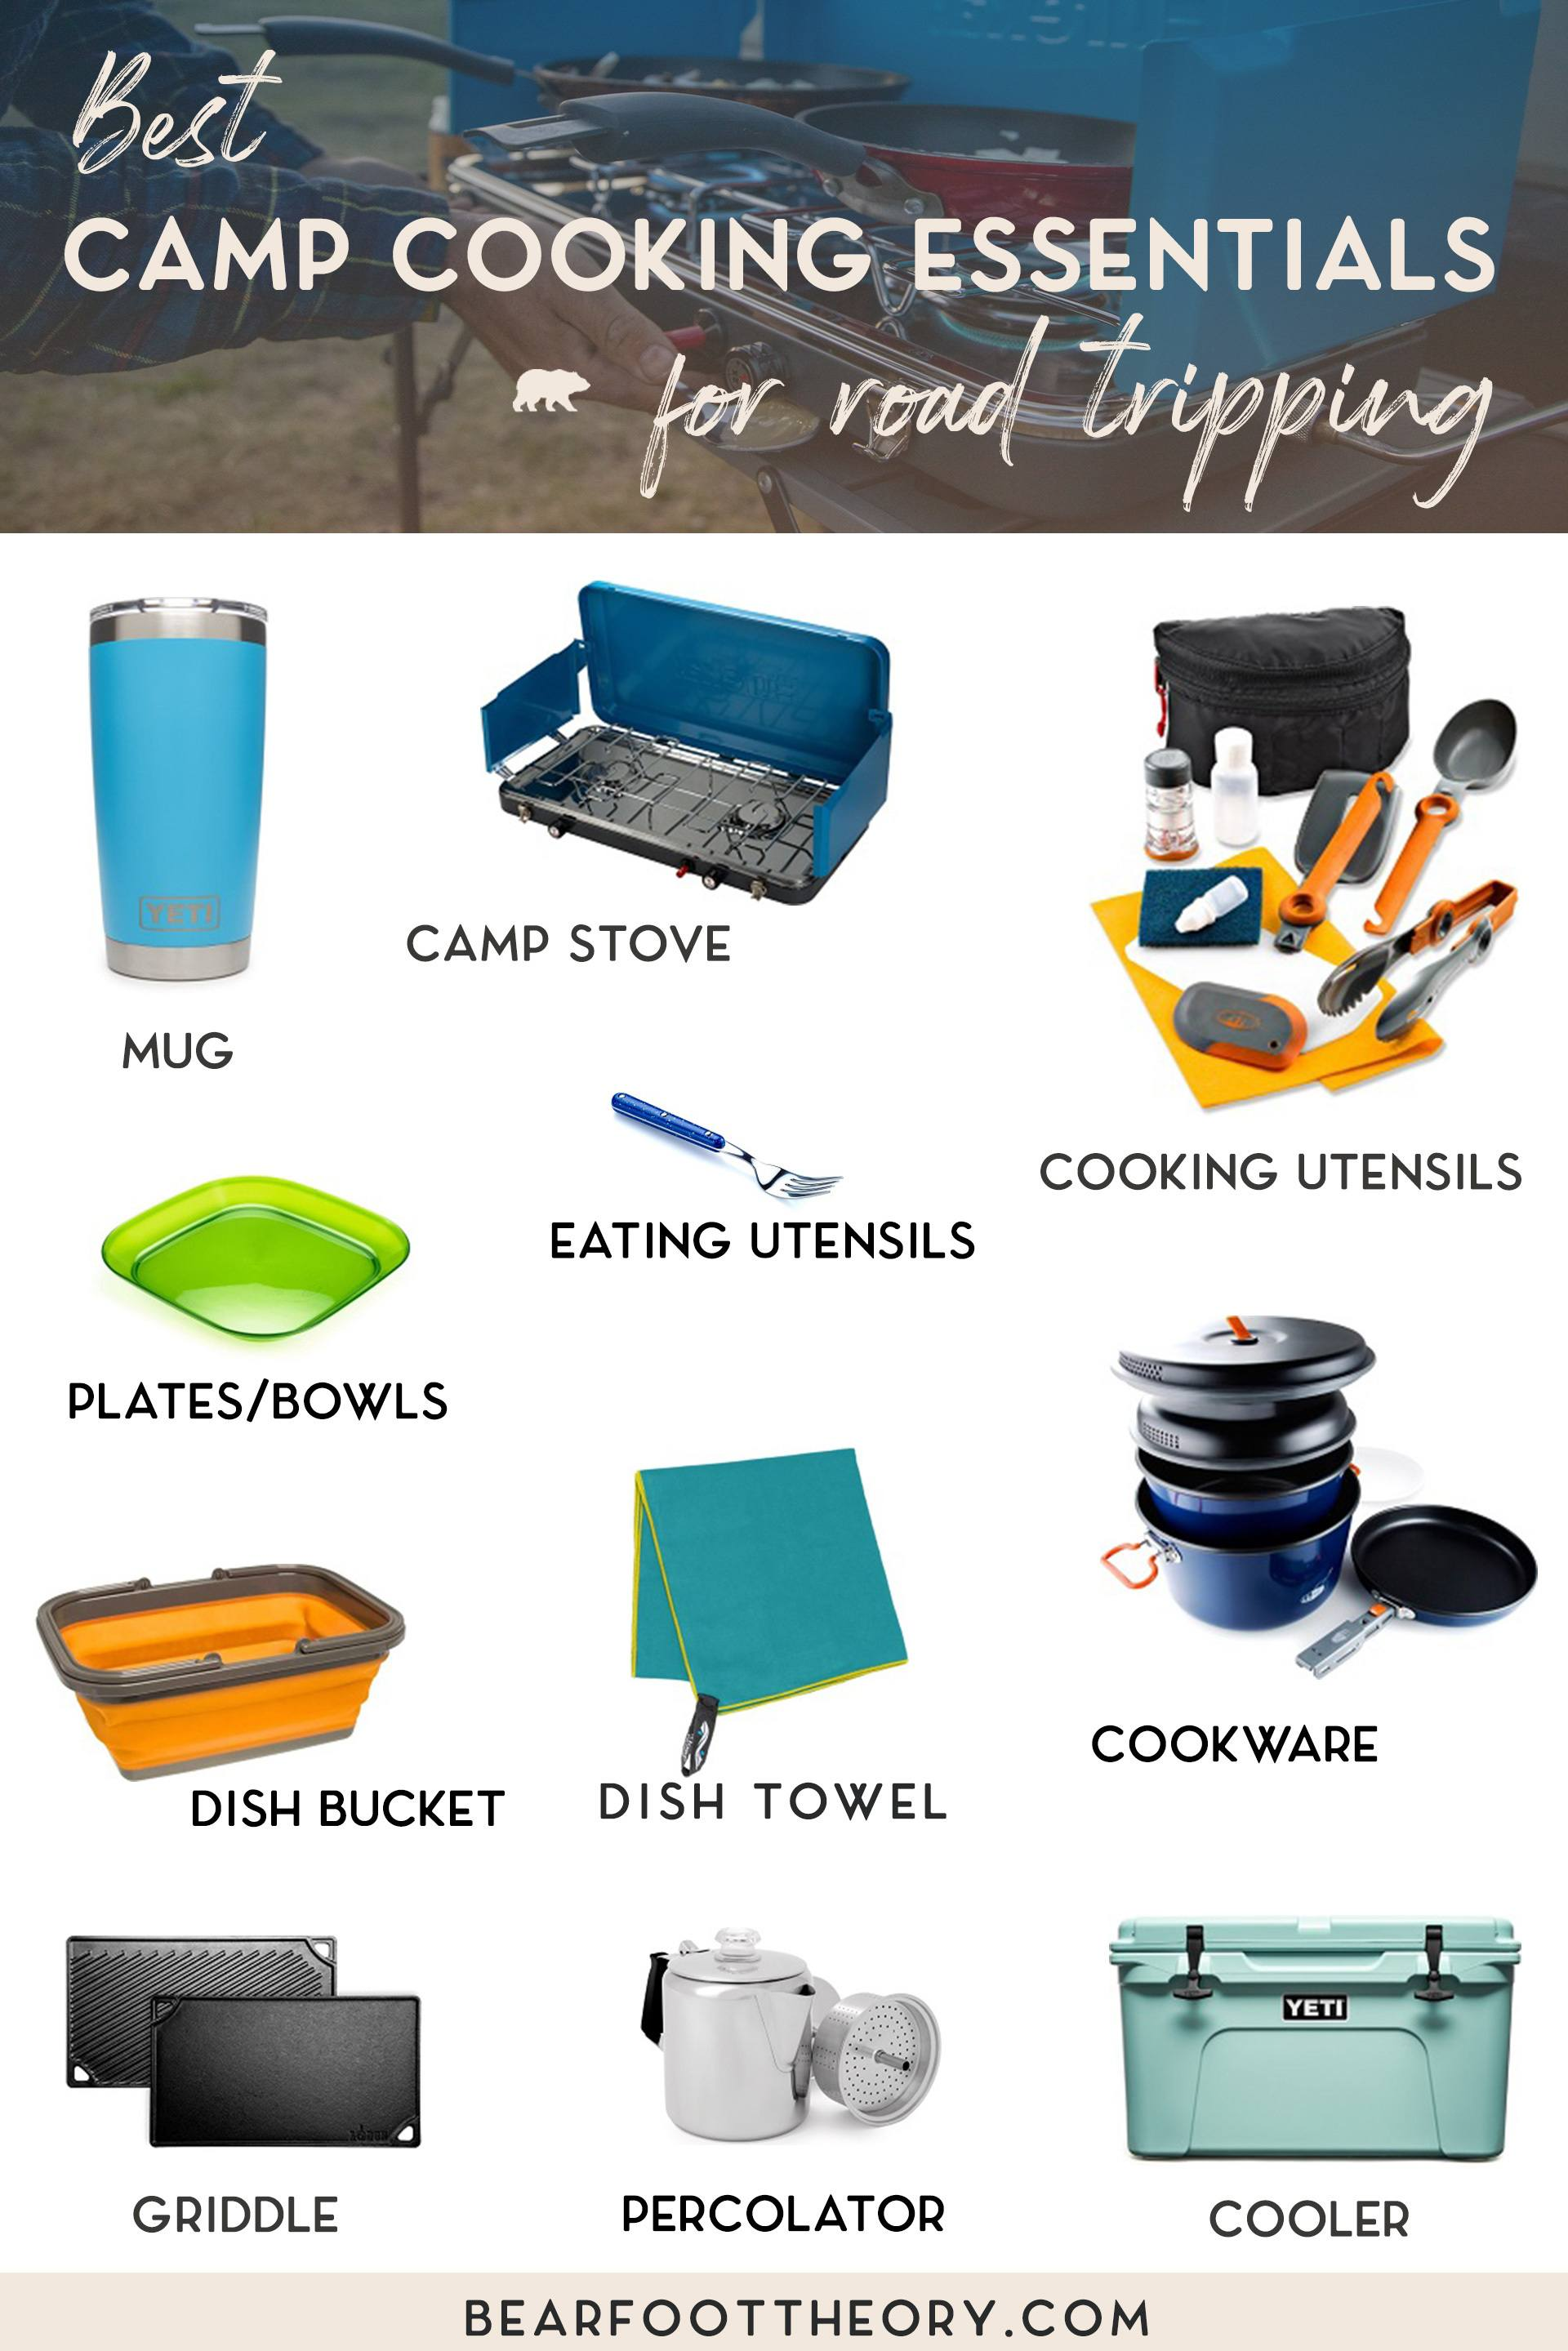 Save money on your road trip by cooking your own meals. Here is the complete checklist of the best camp cooking essentials for your outdoor kitchen.